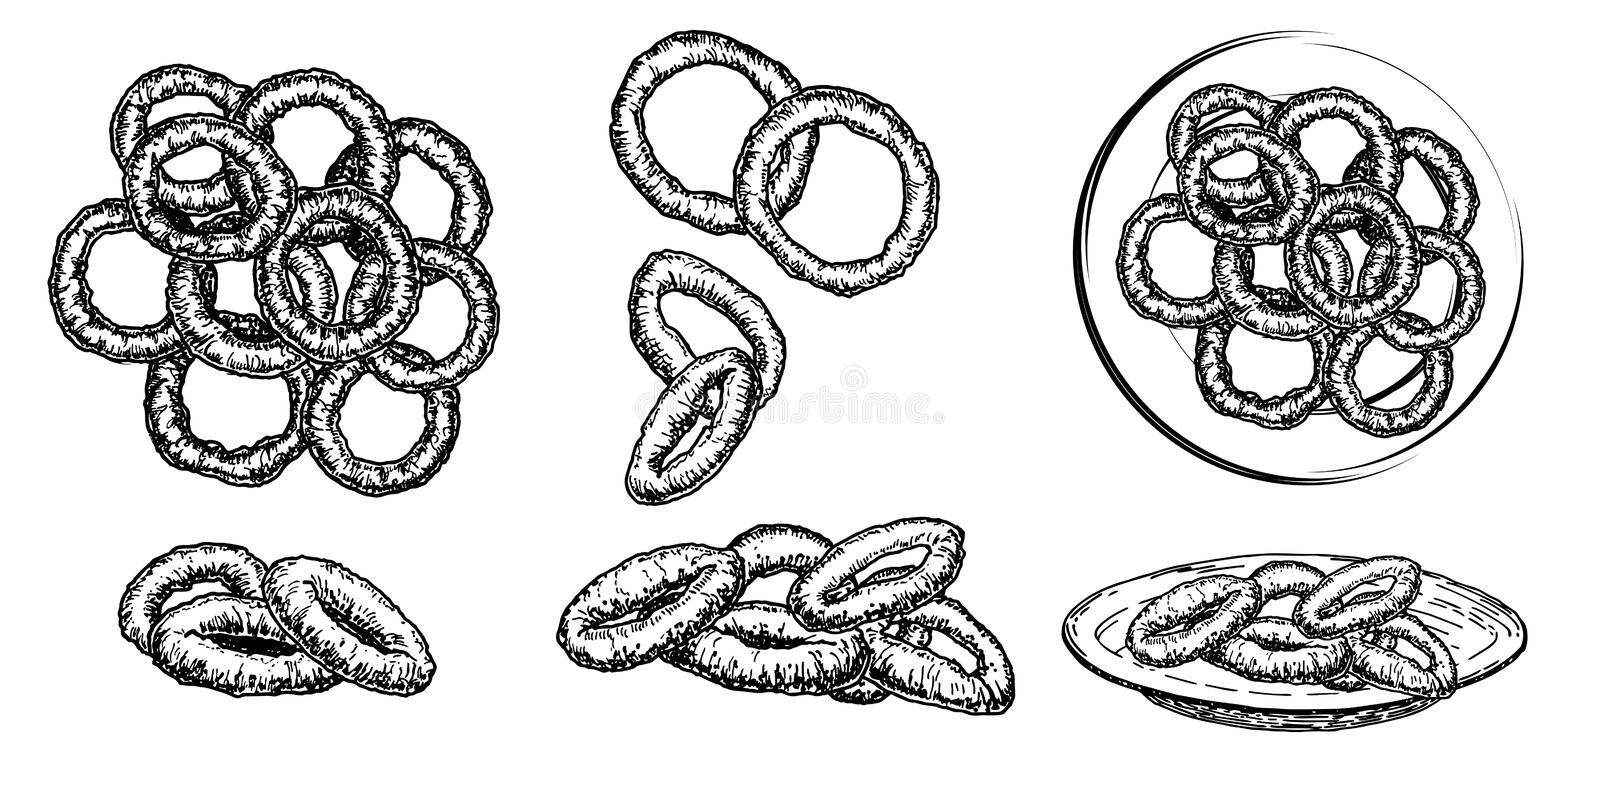 Hand drawn sketch style roasted onion rings set. Street fast food vector illustrations collection royalty free illustration